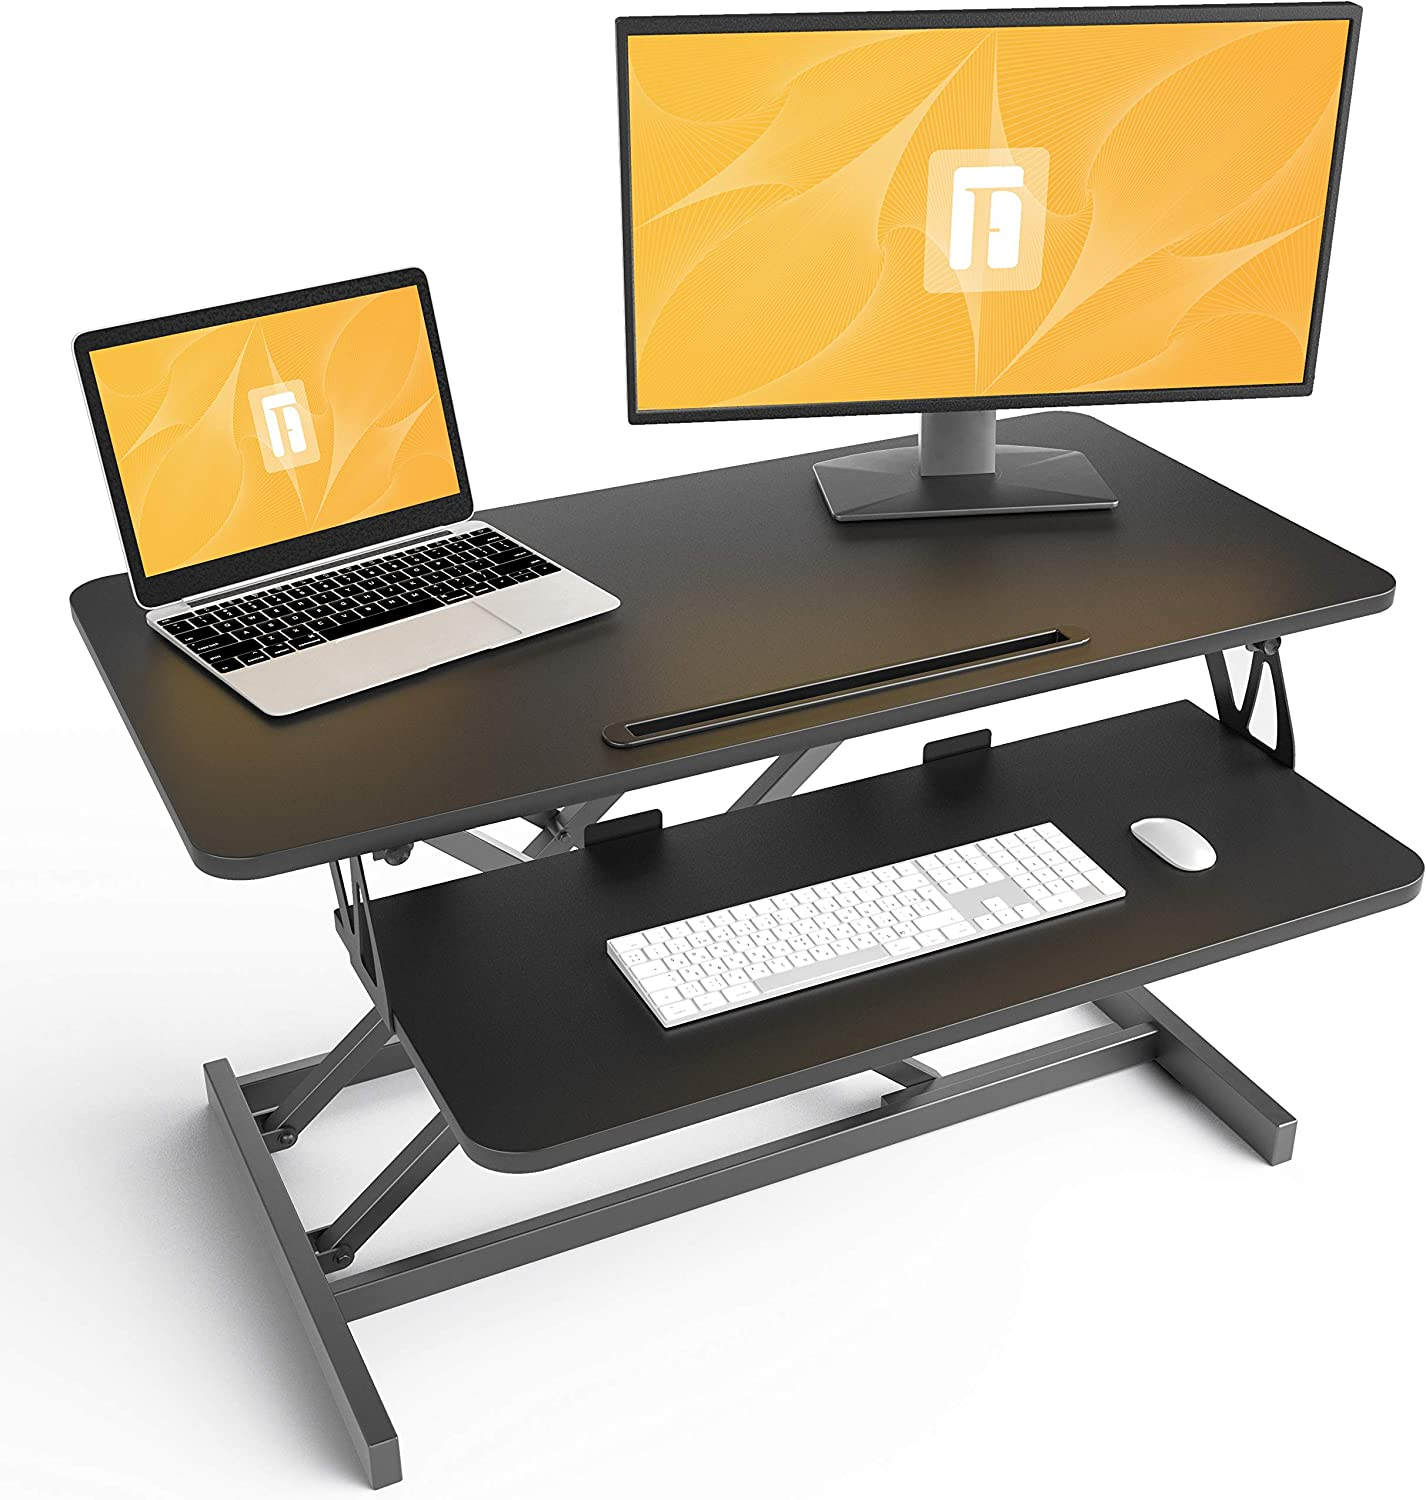 Standing Desk with Height Adjustable – FEZIBO 32 inches Stand Up Black Desk Converter